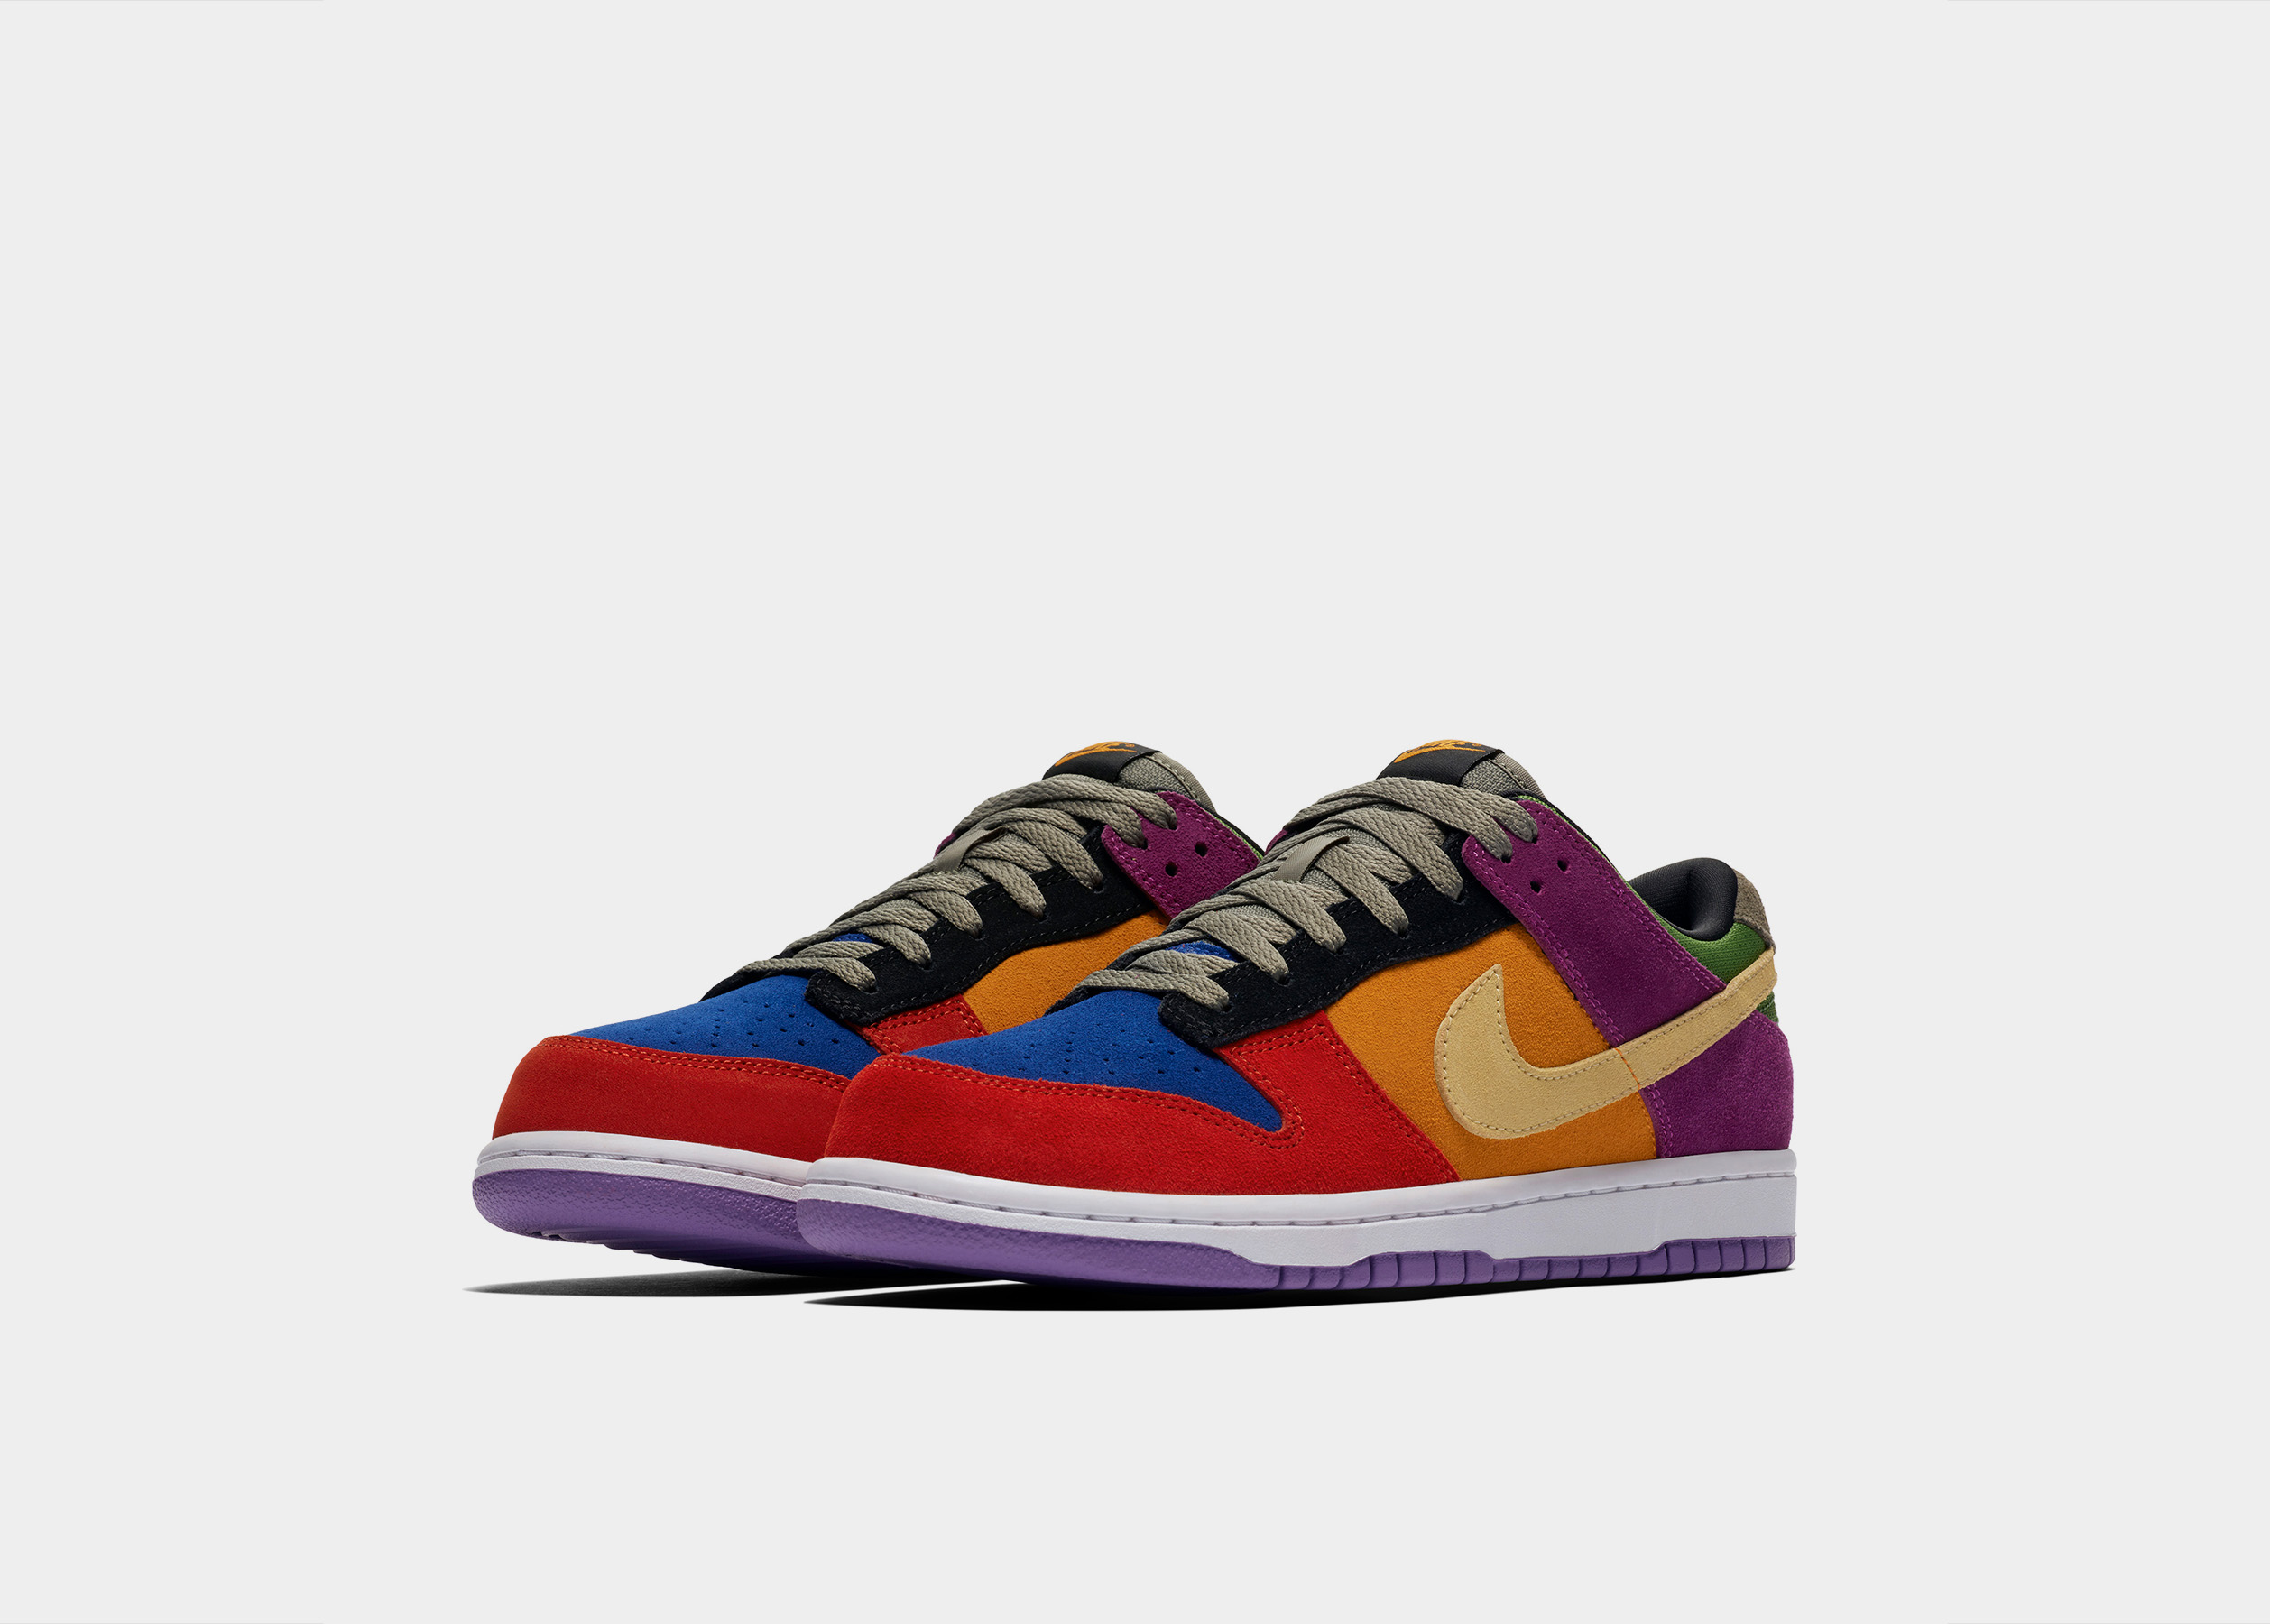 回归的传奇:2019 Nike Dunk Low Viotech